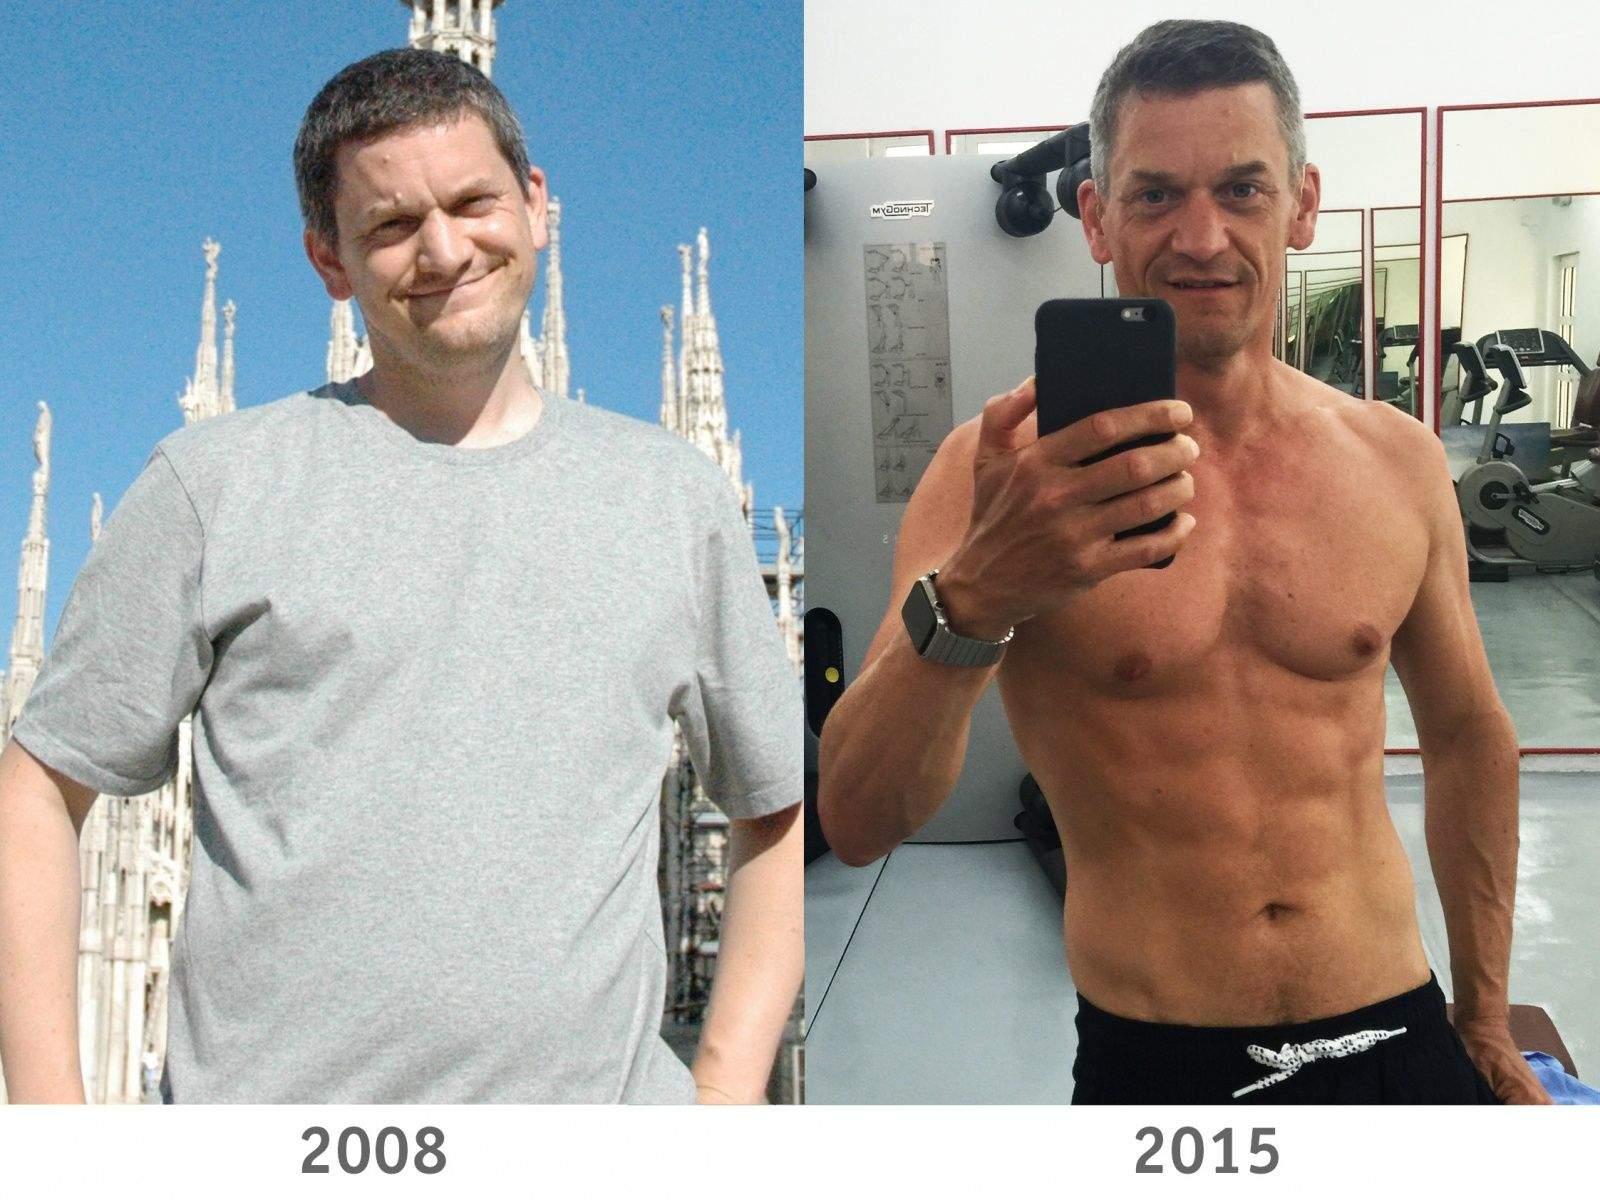 The fitness apps that gave me abs - from dad bod to six pack